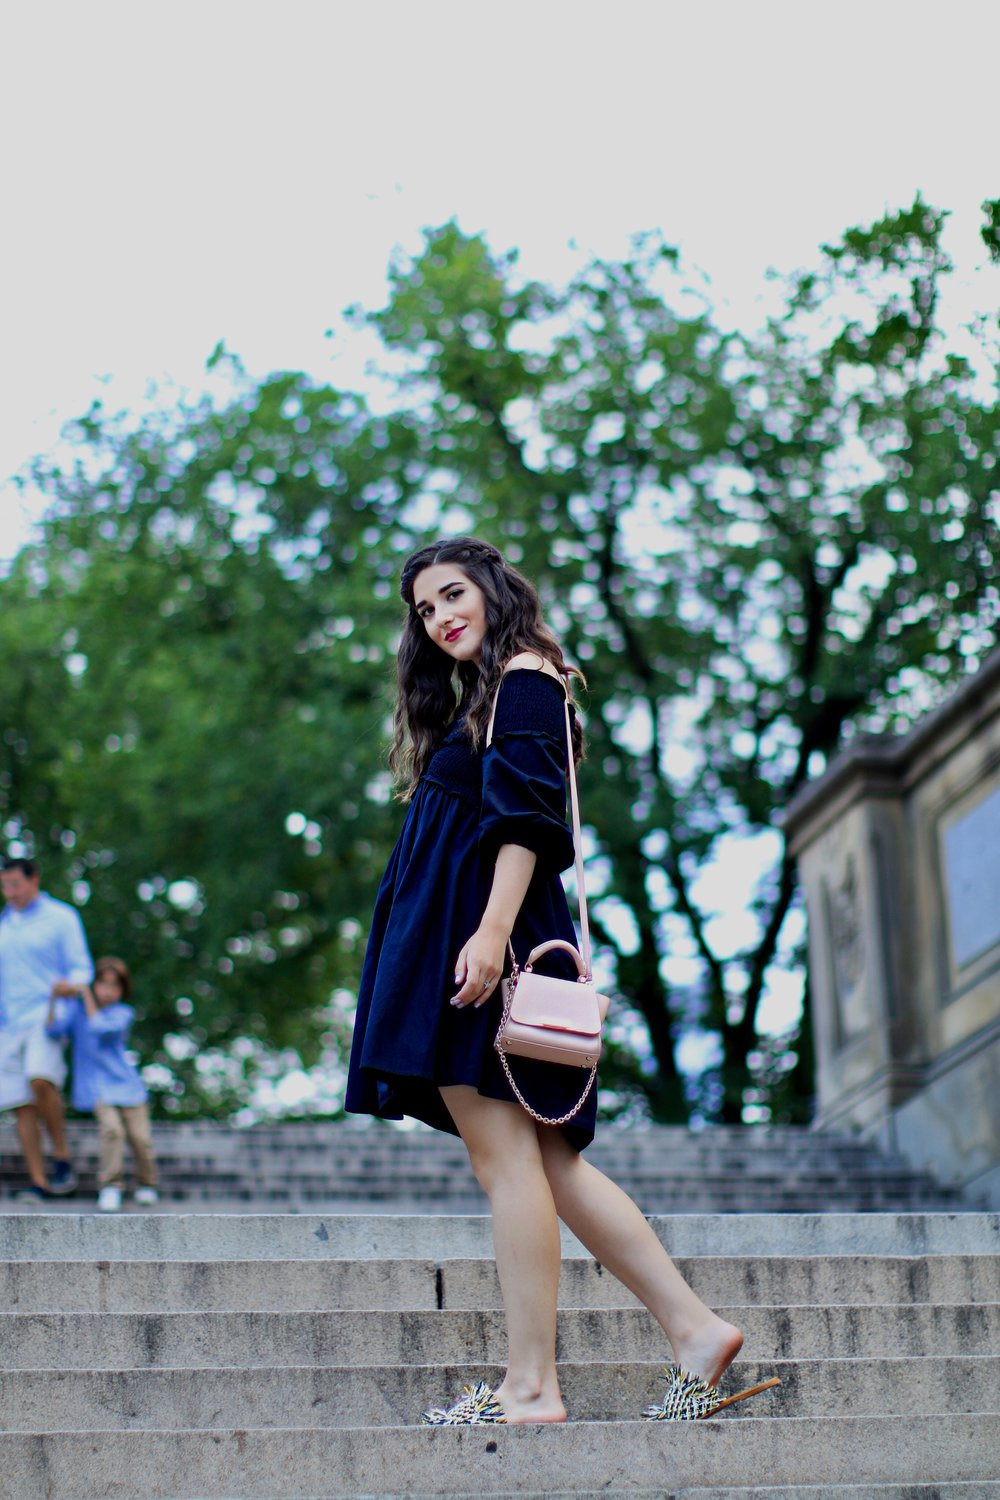 Navy Dress Fringe Slides 27 Blogging Tips For My 27th Birthday Esther Santer Fashion Blog NYC Street Style Blogger Outfit OOTD Trendy Girl Women Pink Bag Zac Posen Purse Summer Sandals What To Wear  Inspiration Inspo Shoes Girly Feminine New York City.JPG